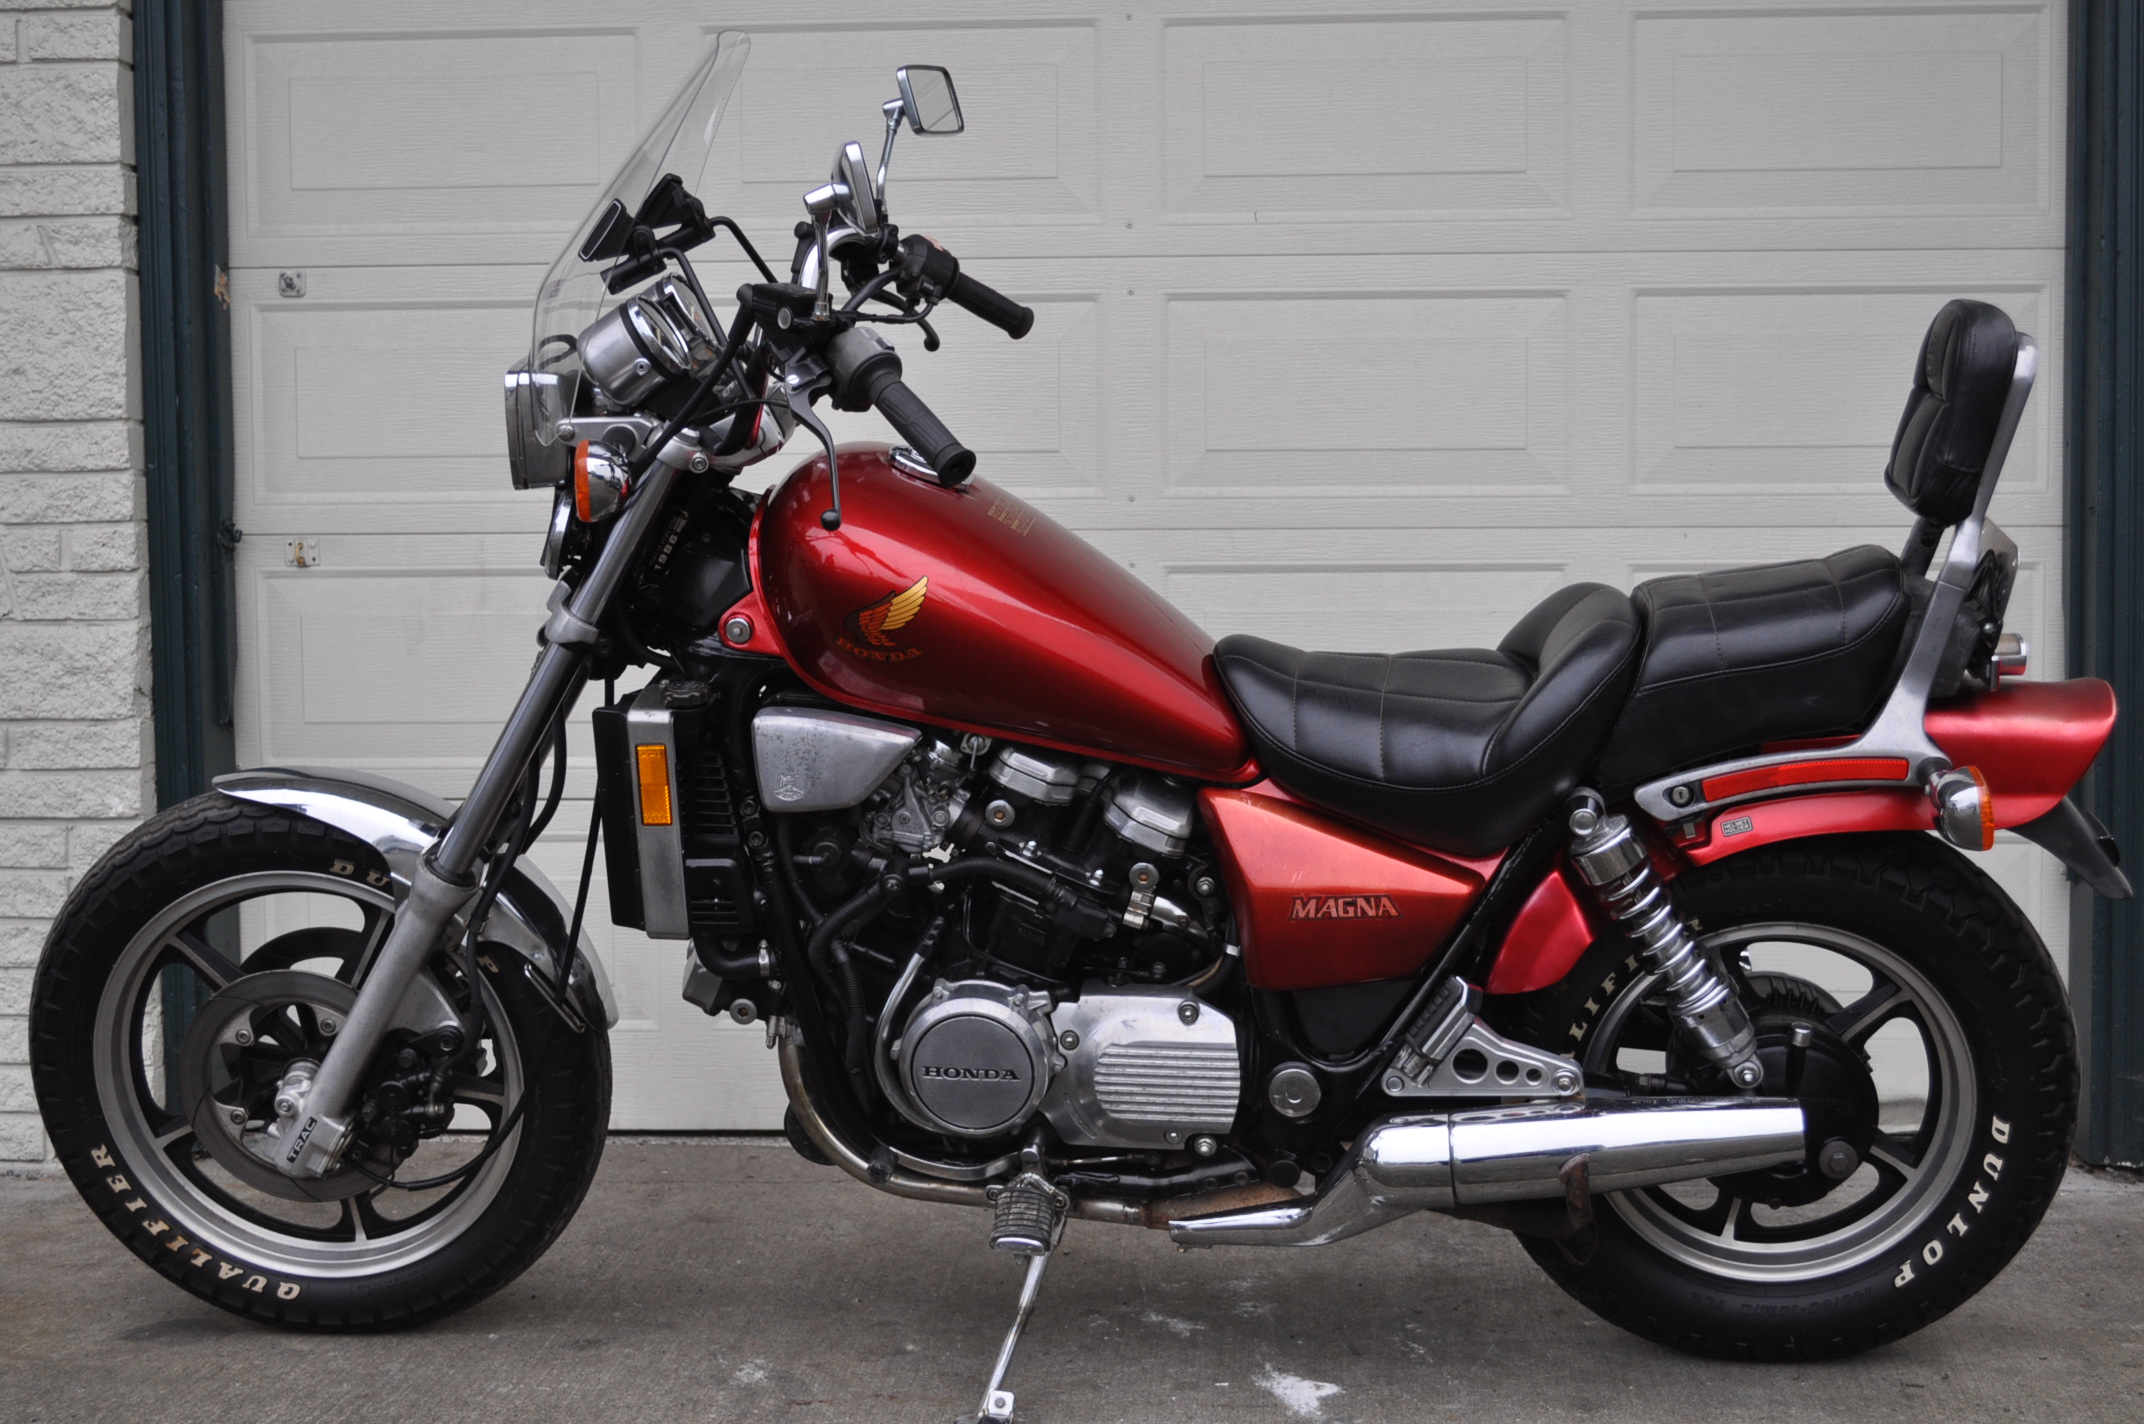 Buell Engine Specs further Daryl Dixon Motorcycle moreover Honda VF 750 S C 1982 1985 L Avenement Du V4 furthermore Honda Vf 750 C 1994 in addition How To Check The Age Of Your Bike Motorcycle Vin Number. on 1985 honda magna 750 specs